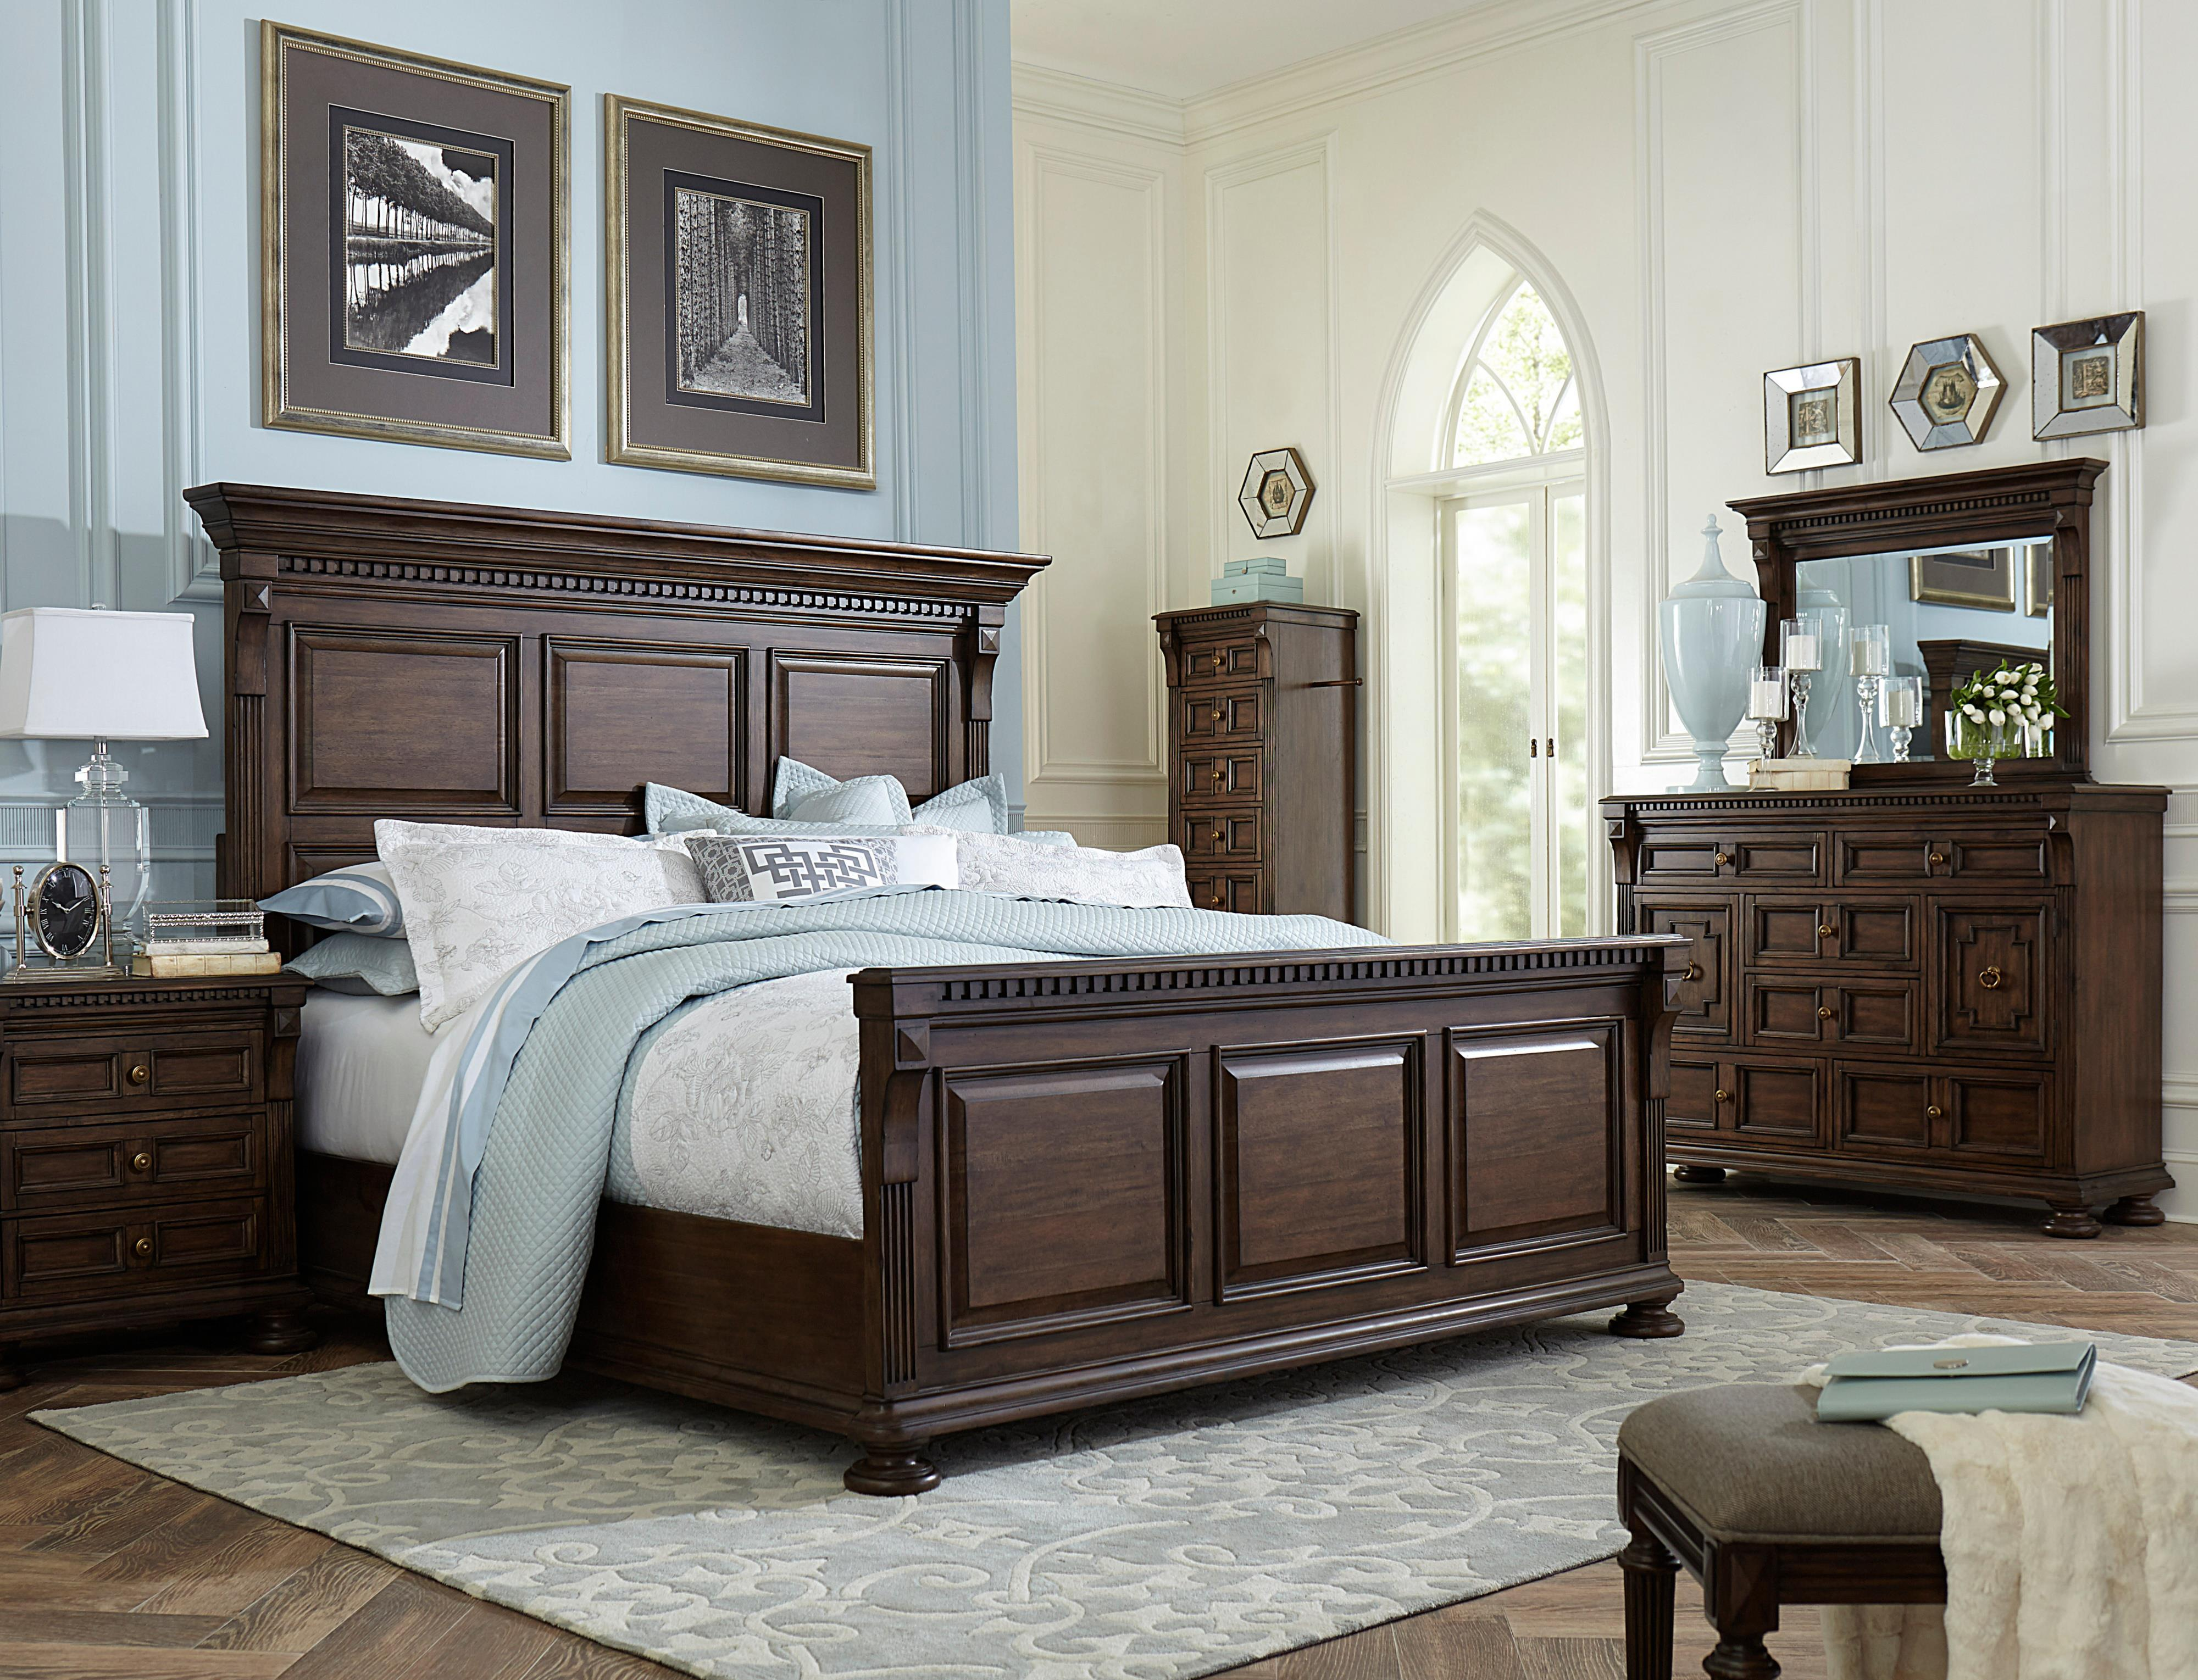 Broyhill Furniture Lyla Queen Bedroom Group - Item Number: 4912 Q Bedroom Group 1